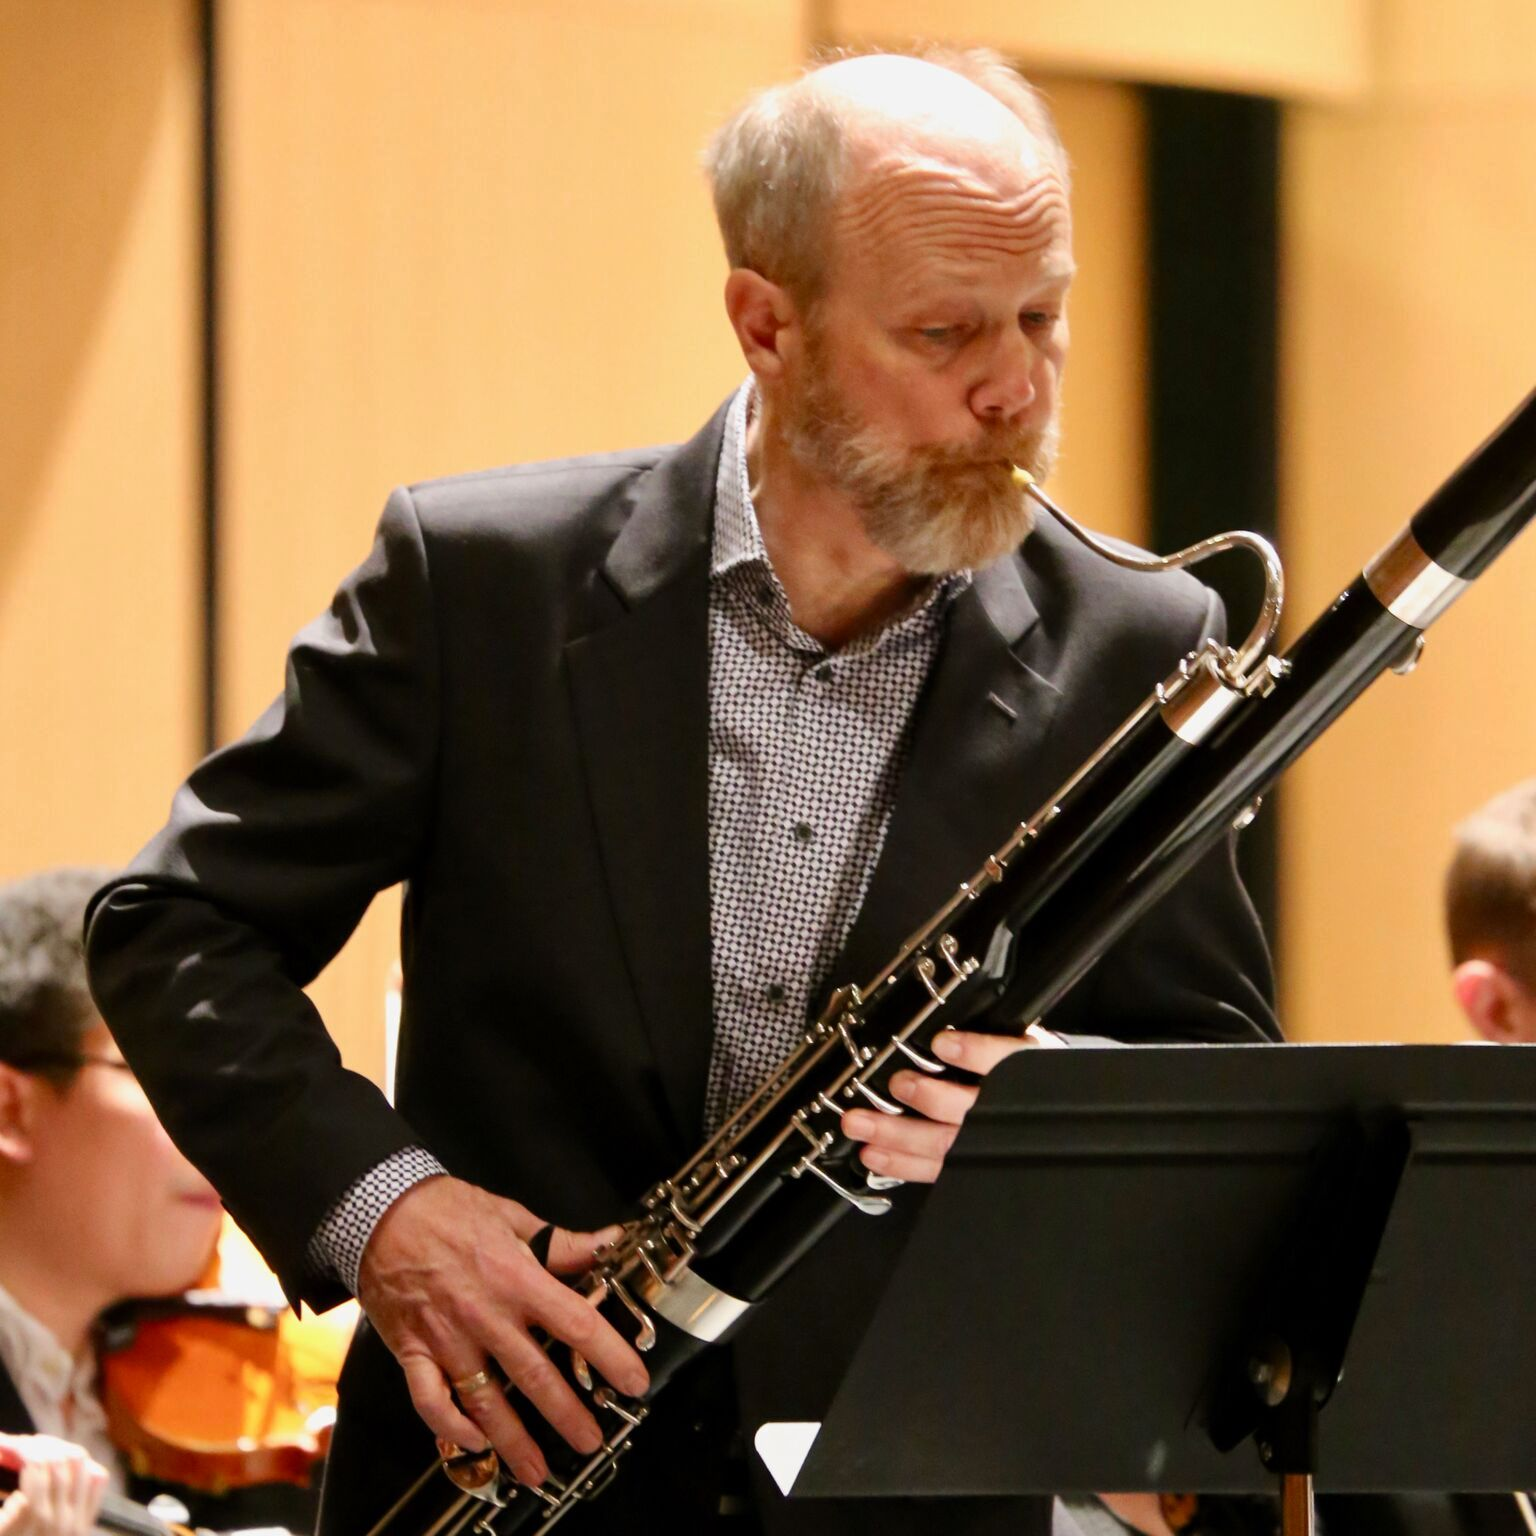 man with beard blows into a bassoon